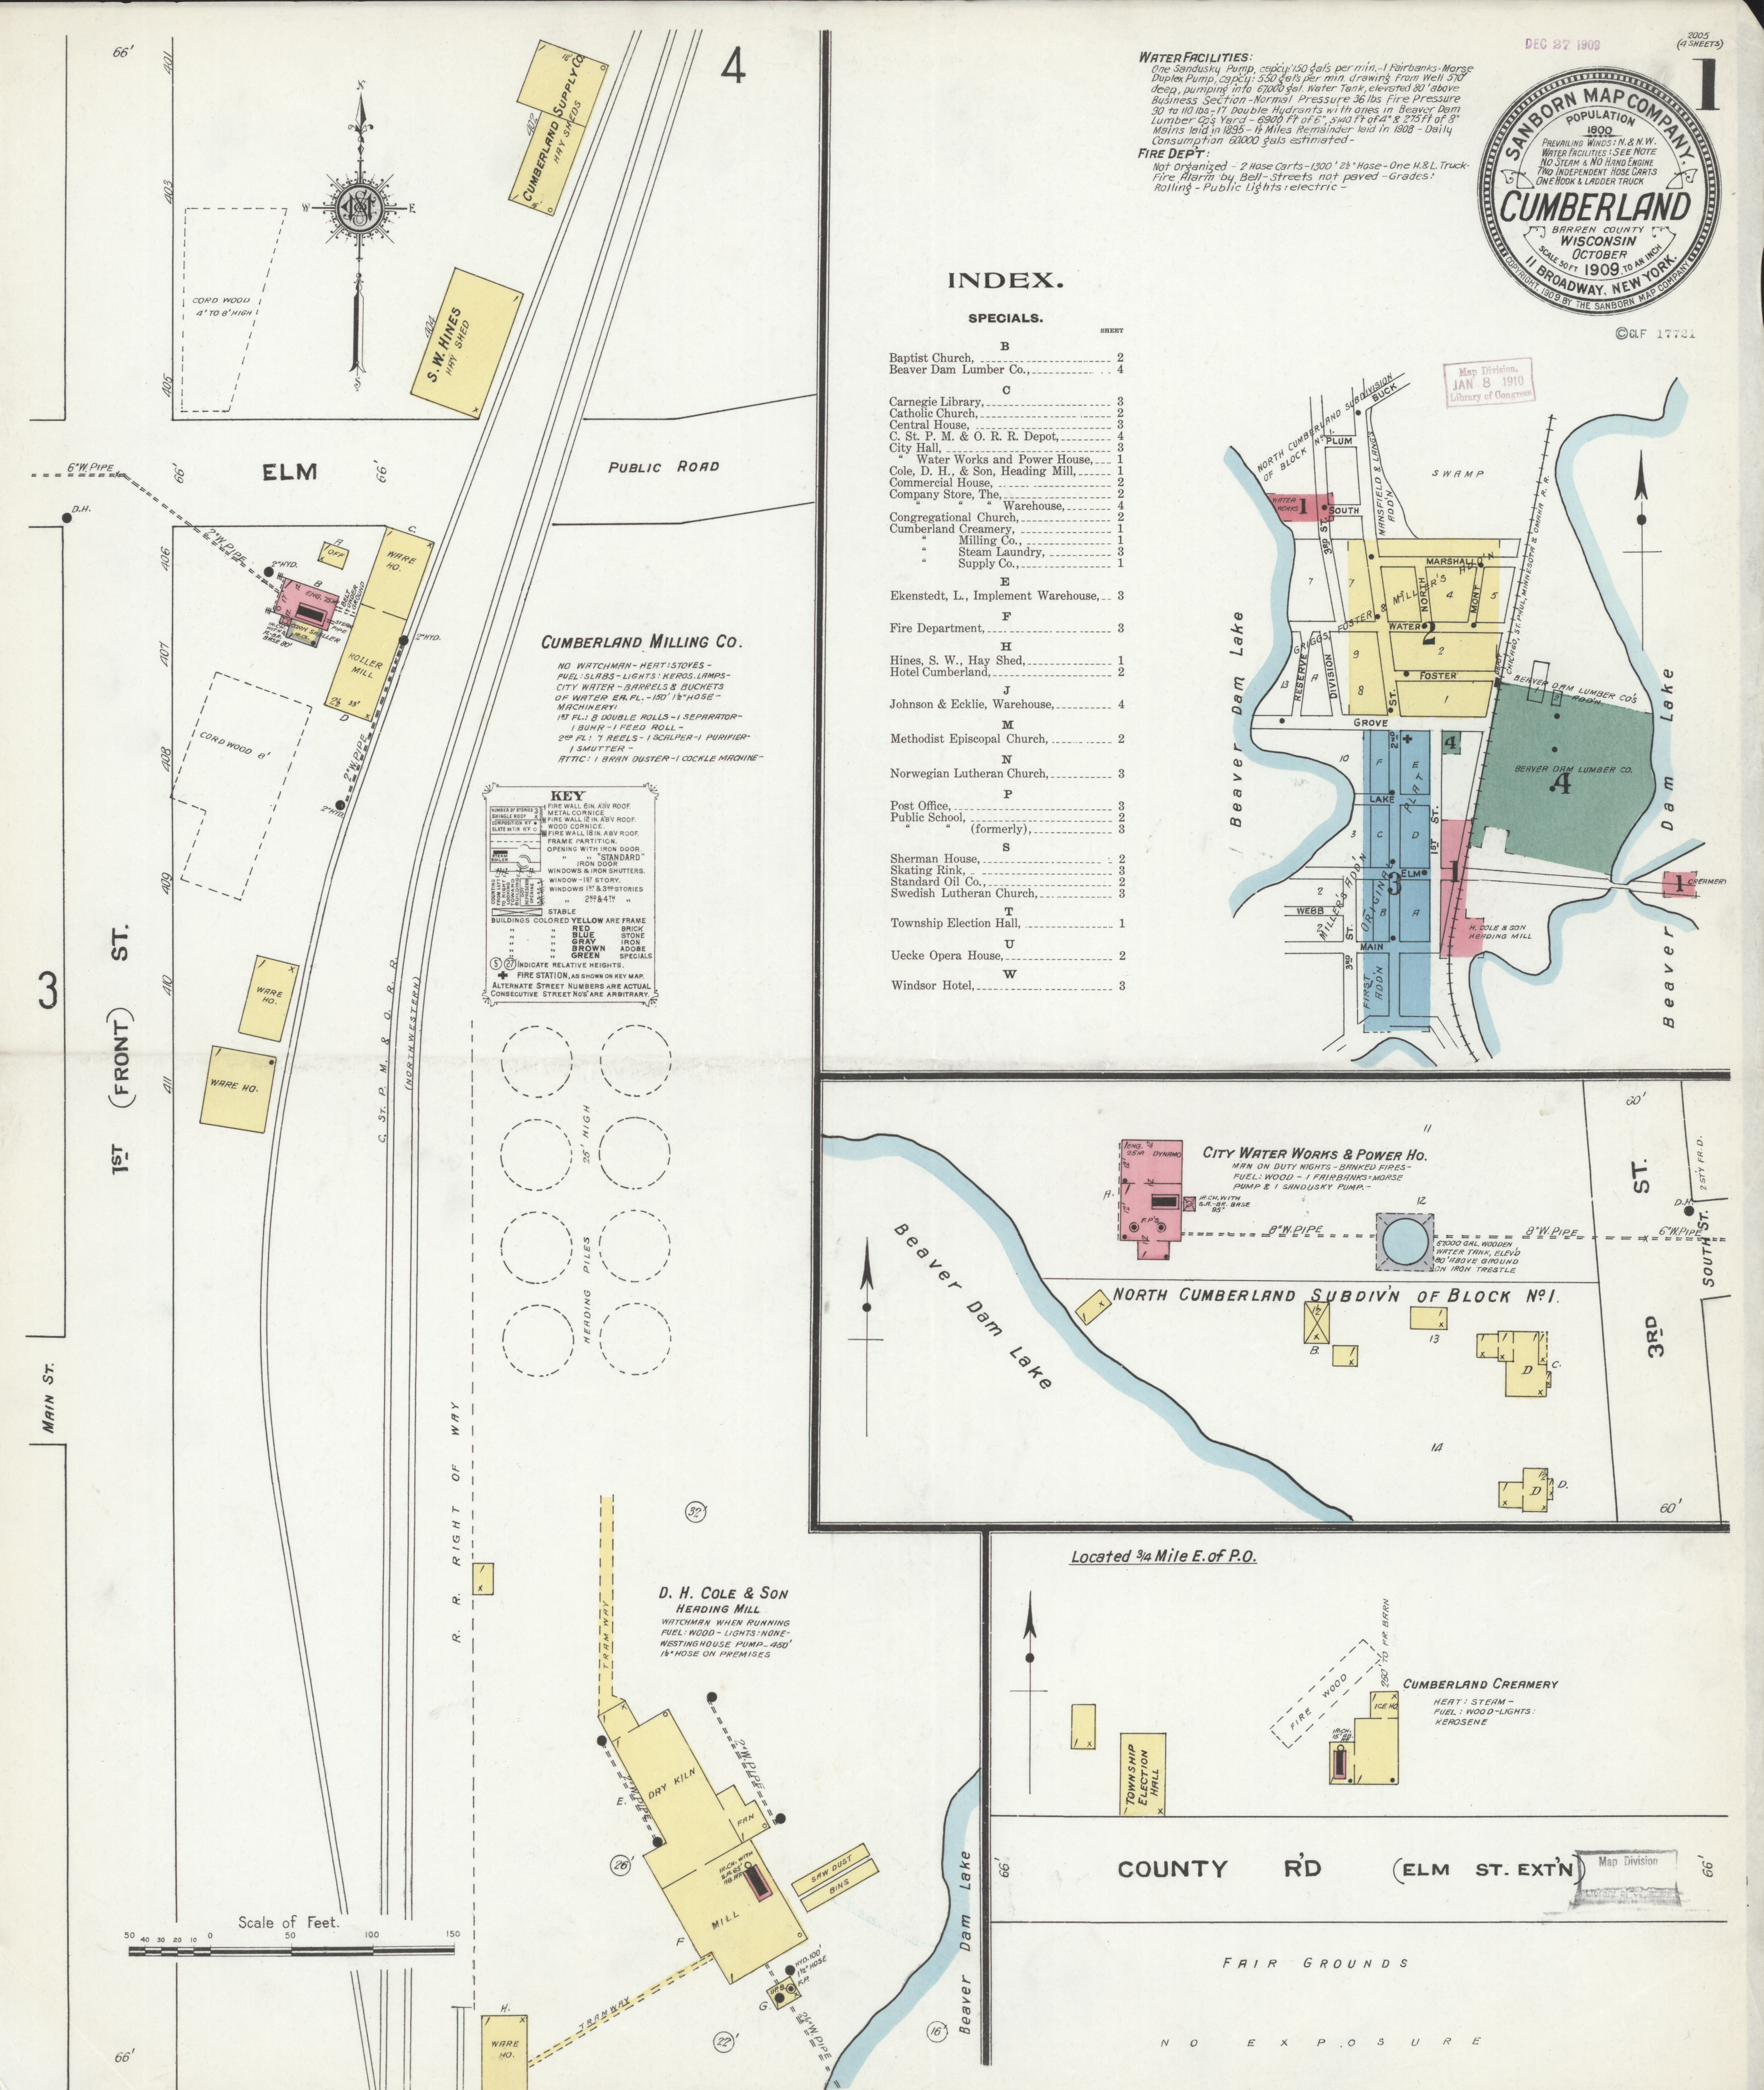 File:Sanborn Fire Insurance Map from berland, Barron ... on map of southwestern wisconsin, map northern wisconsin, court districts of wisconsin, map of minnesota, large map of wisconsin, map of chicago on us map, map of st. cloud, areas of wisconsin, map of wisconsin highways, map of vernon wisconsin, map of africa with physical features, physical map of wisconsin, western district of wisconsin, map of northcentral wisconsin, map of school districts in wi, map of ashland ky area, major cities in wisconsin, map of west wisconsin, map of wisconsin rivers, map of wisconsin cities and counties,